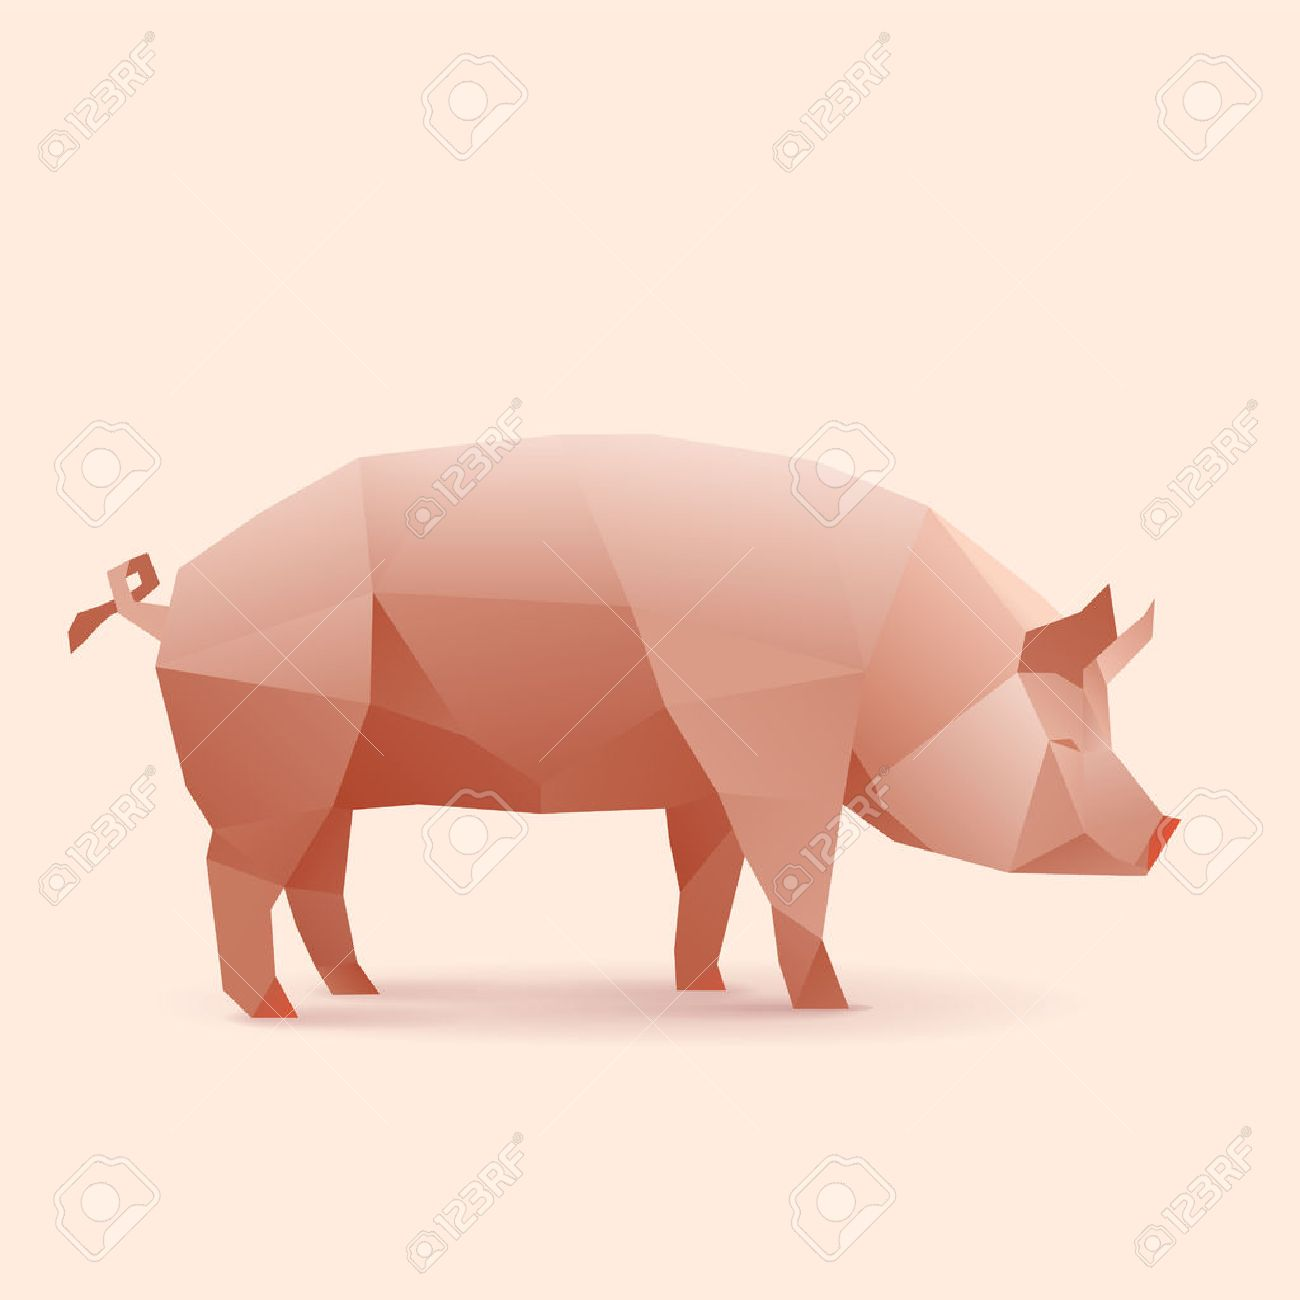 151 origami pig cliparts stock vector and royalty free origami polygonal illustration of pig illustration pooptronica